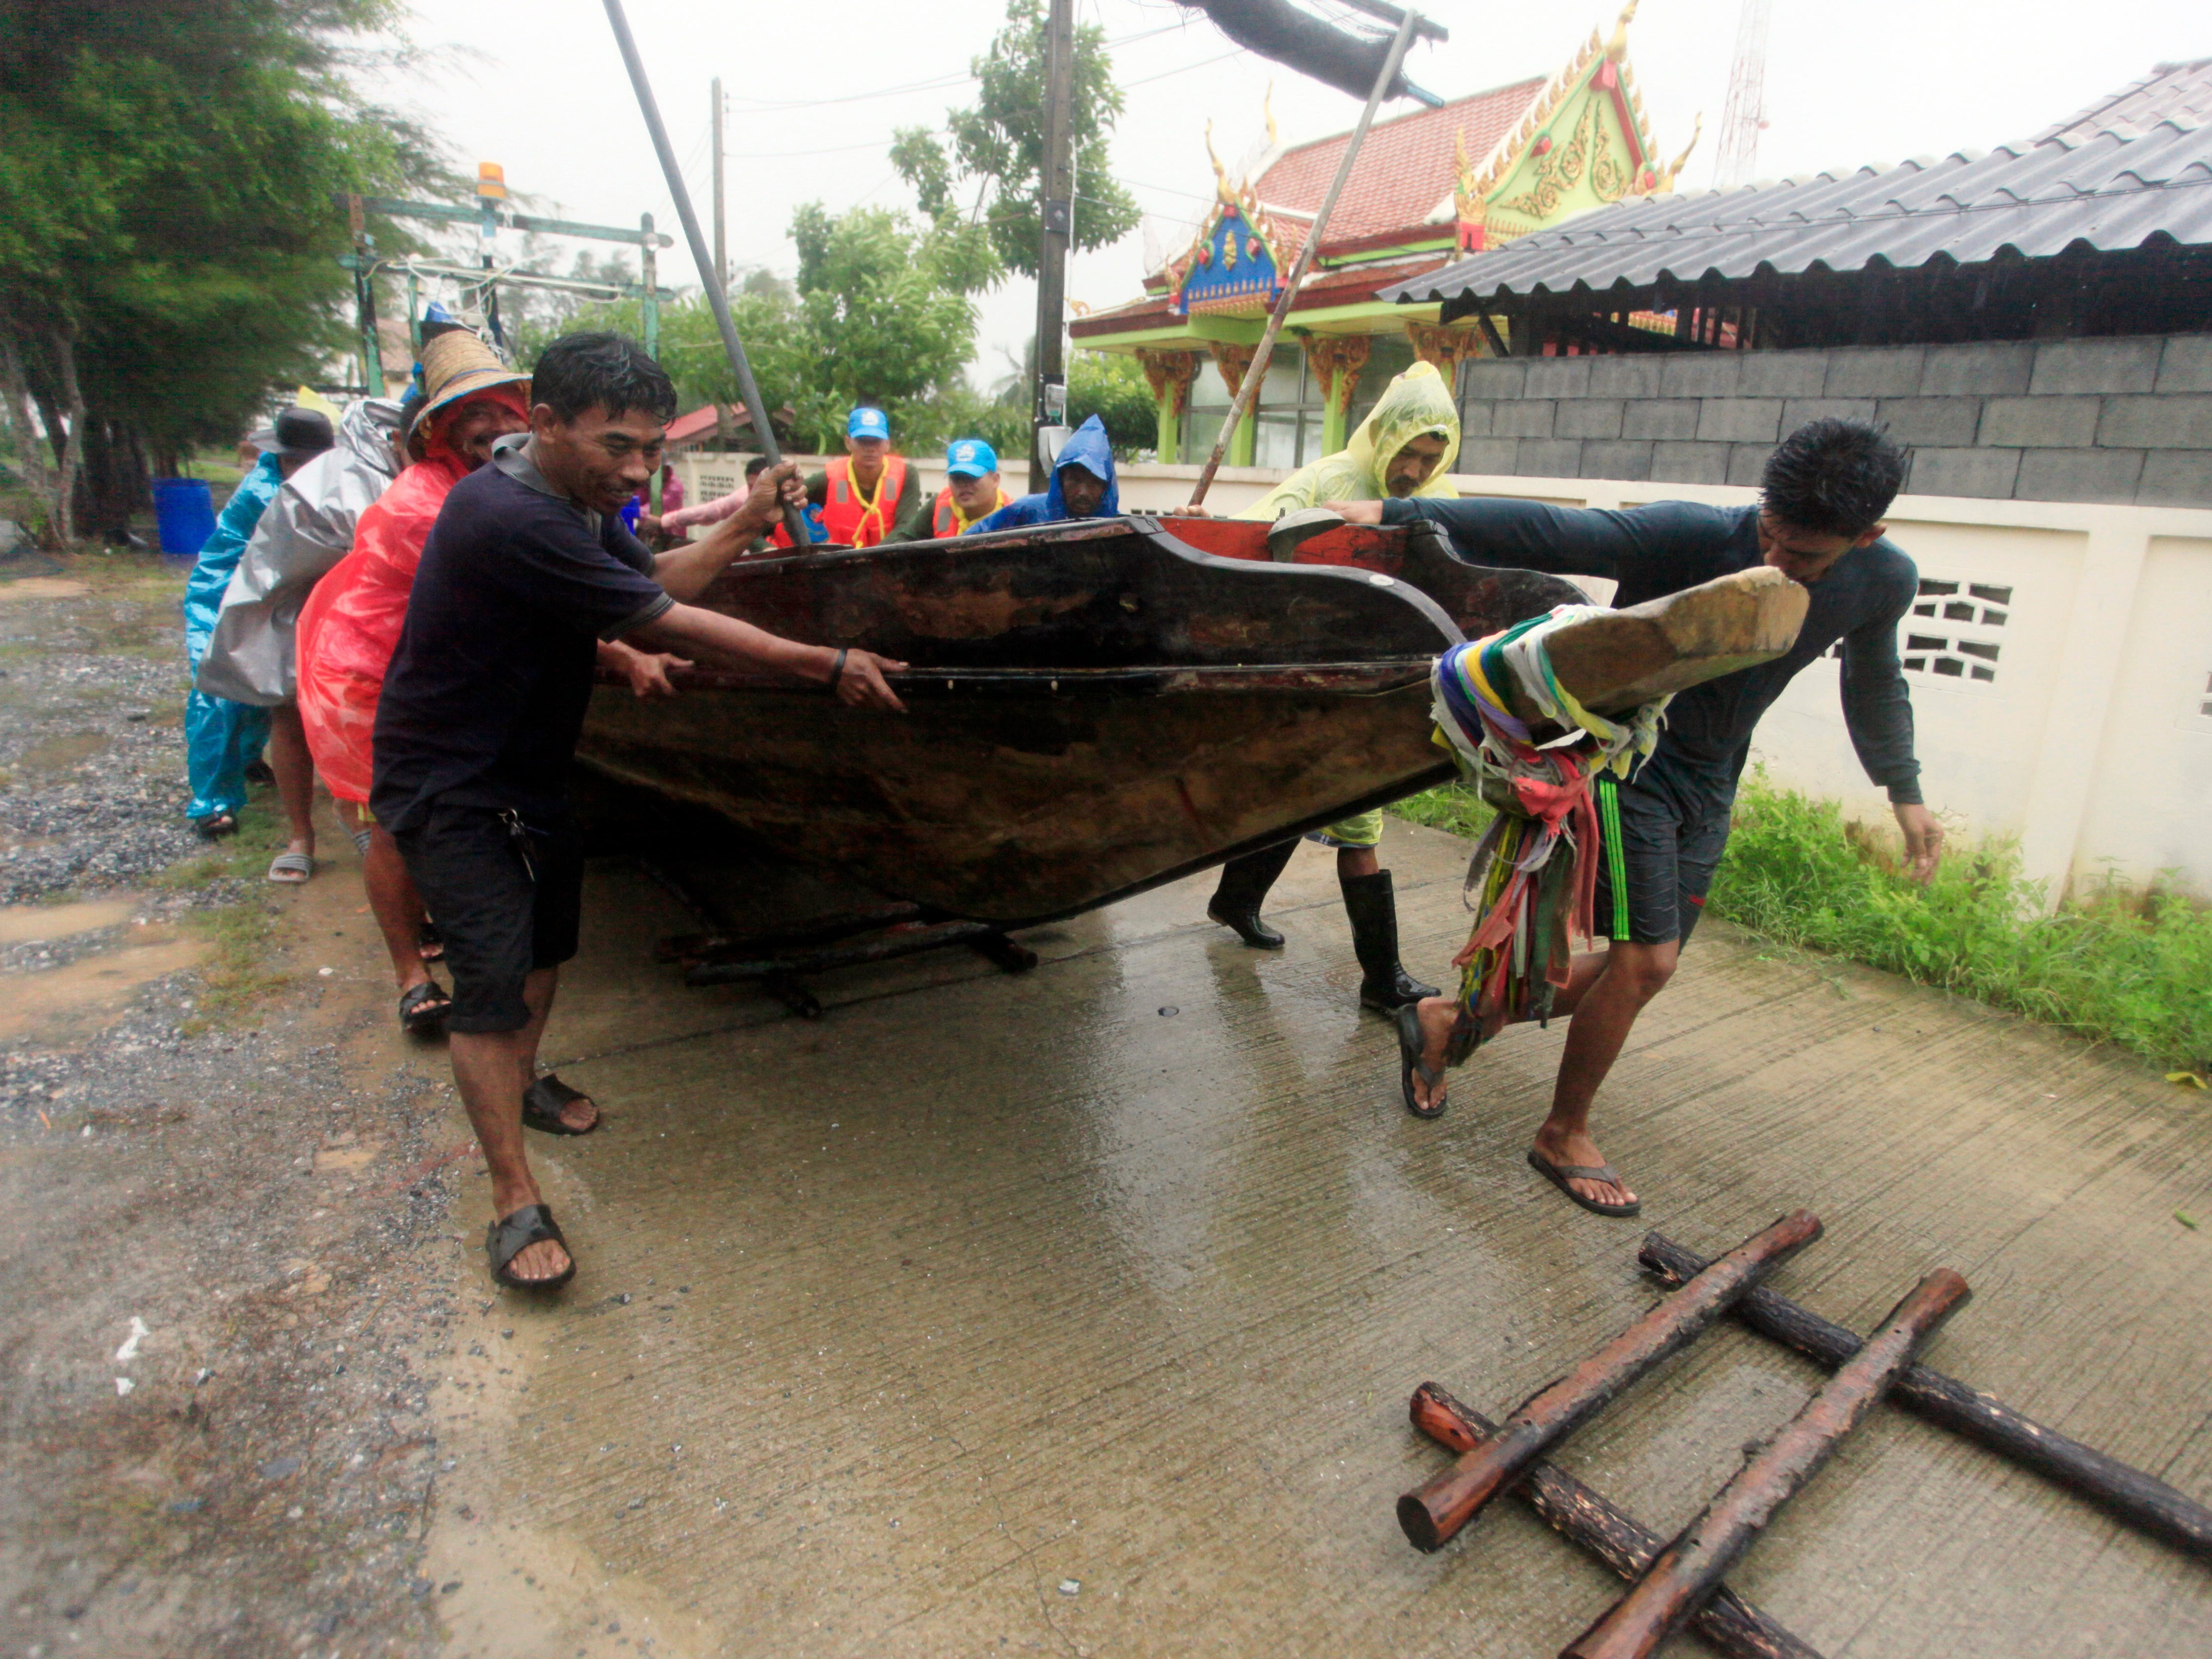 Local fishermen move a boat ashore in preparation for the approaching Tropical Storm Pabuk, Friday, Jan. 4, 2019, in Pak Phanang, in the southern province of Nakhon Si Thammarat, southern Thailand. Rain, winds and surging seawater are striking southern Thailand as a strengthening tropical storm nears coastal villages and popular tourist resorts. (AP Photo/Sumeth Panpetch) ORG XMIT: BKWS101